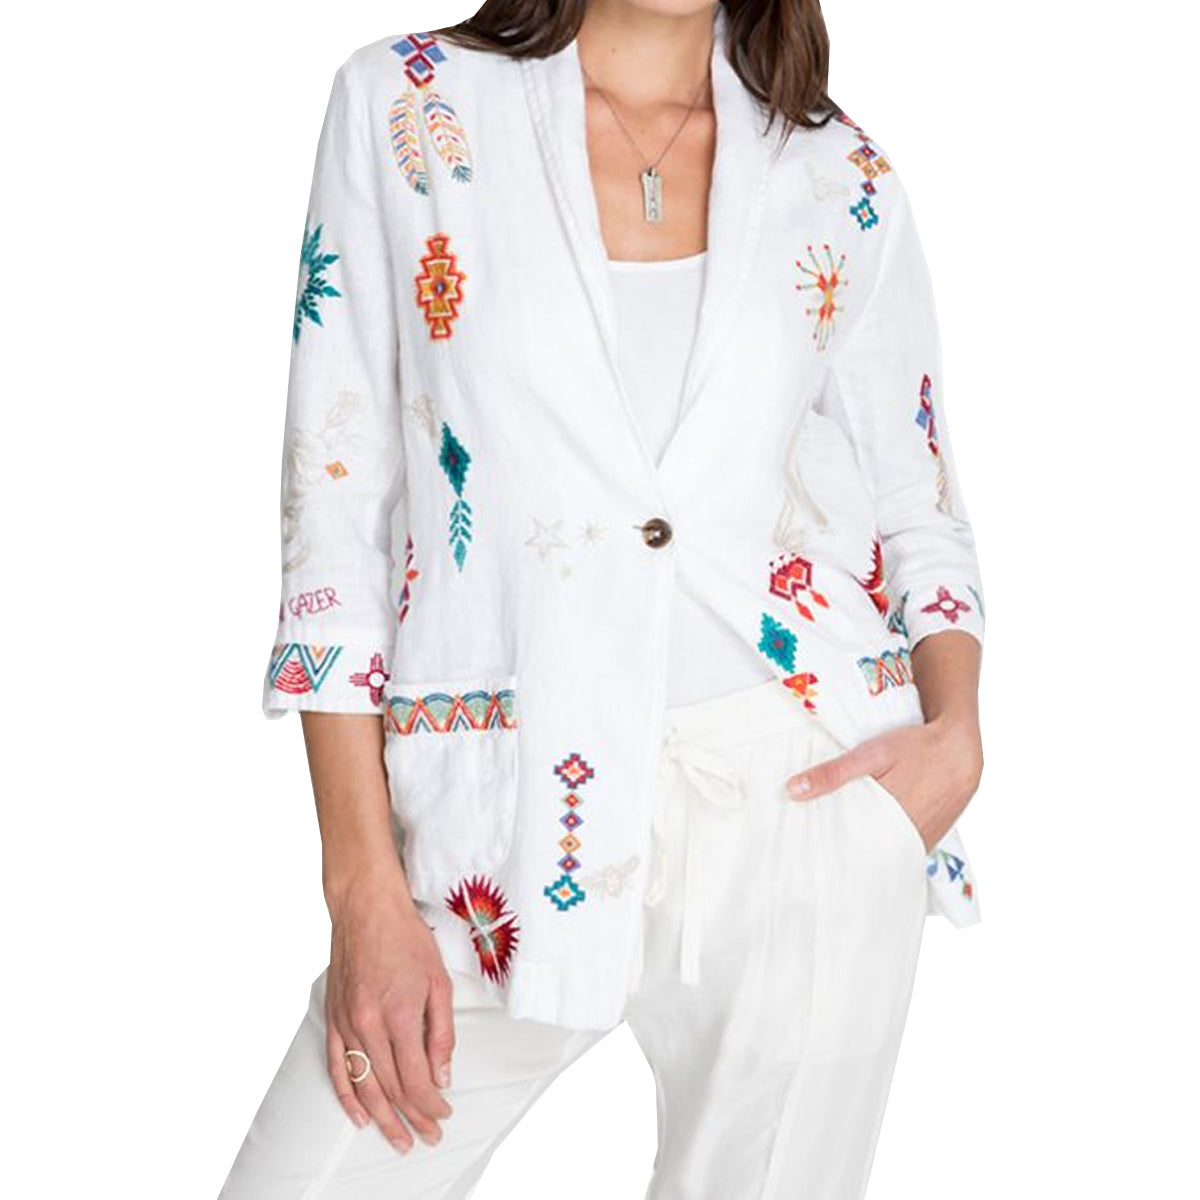 Johnny Was Women's Saguaro Cropped Shawl Collar Jacket - White